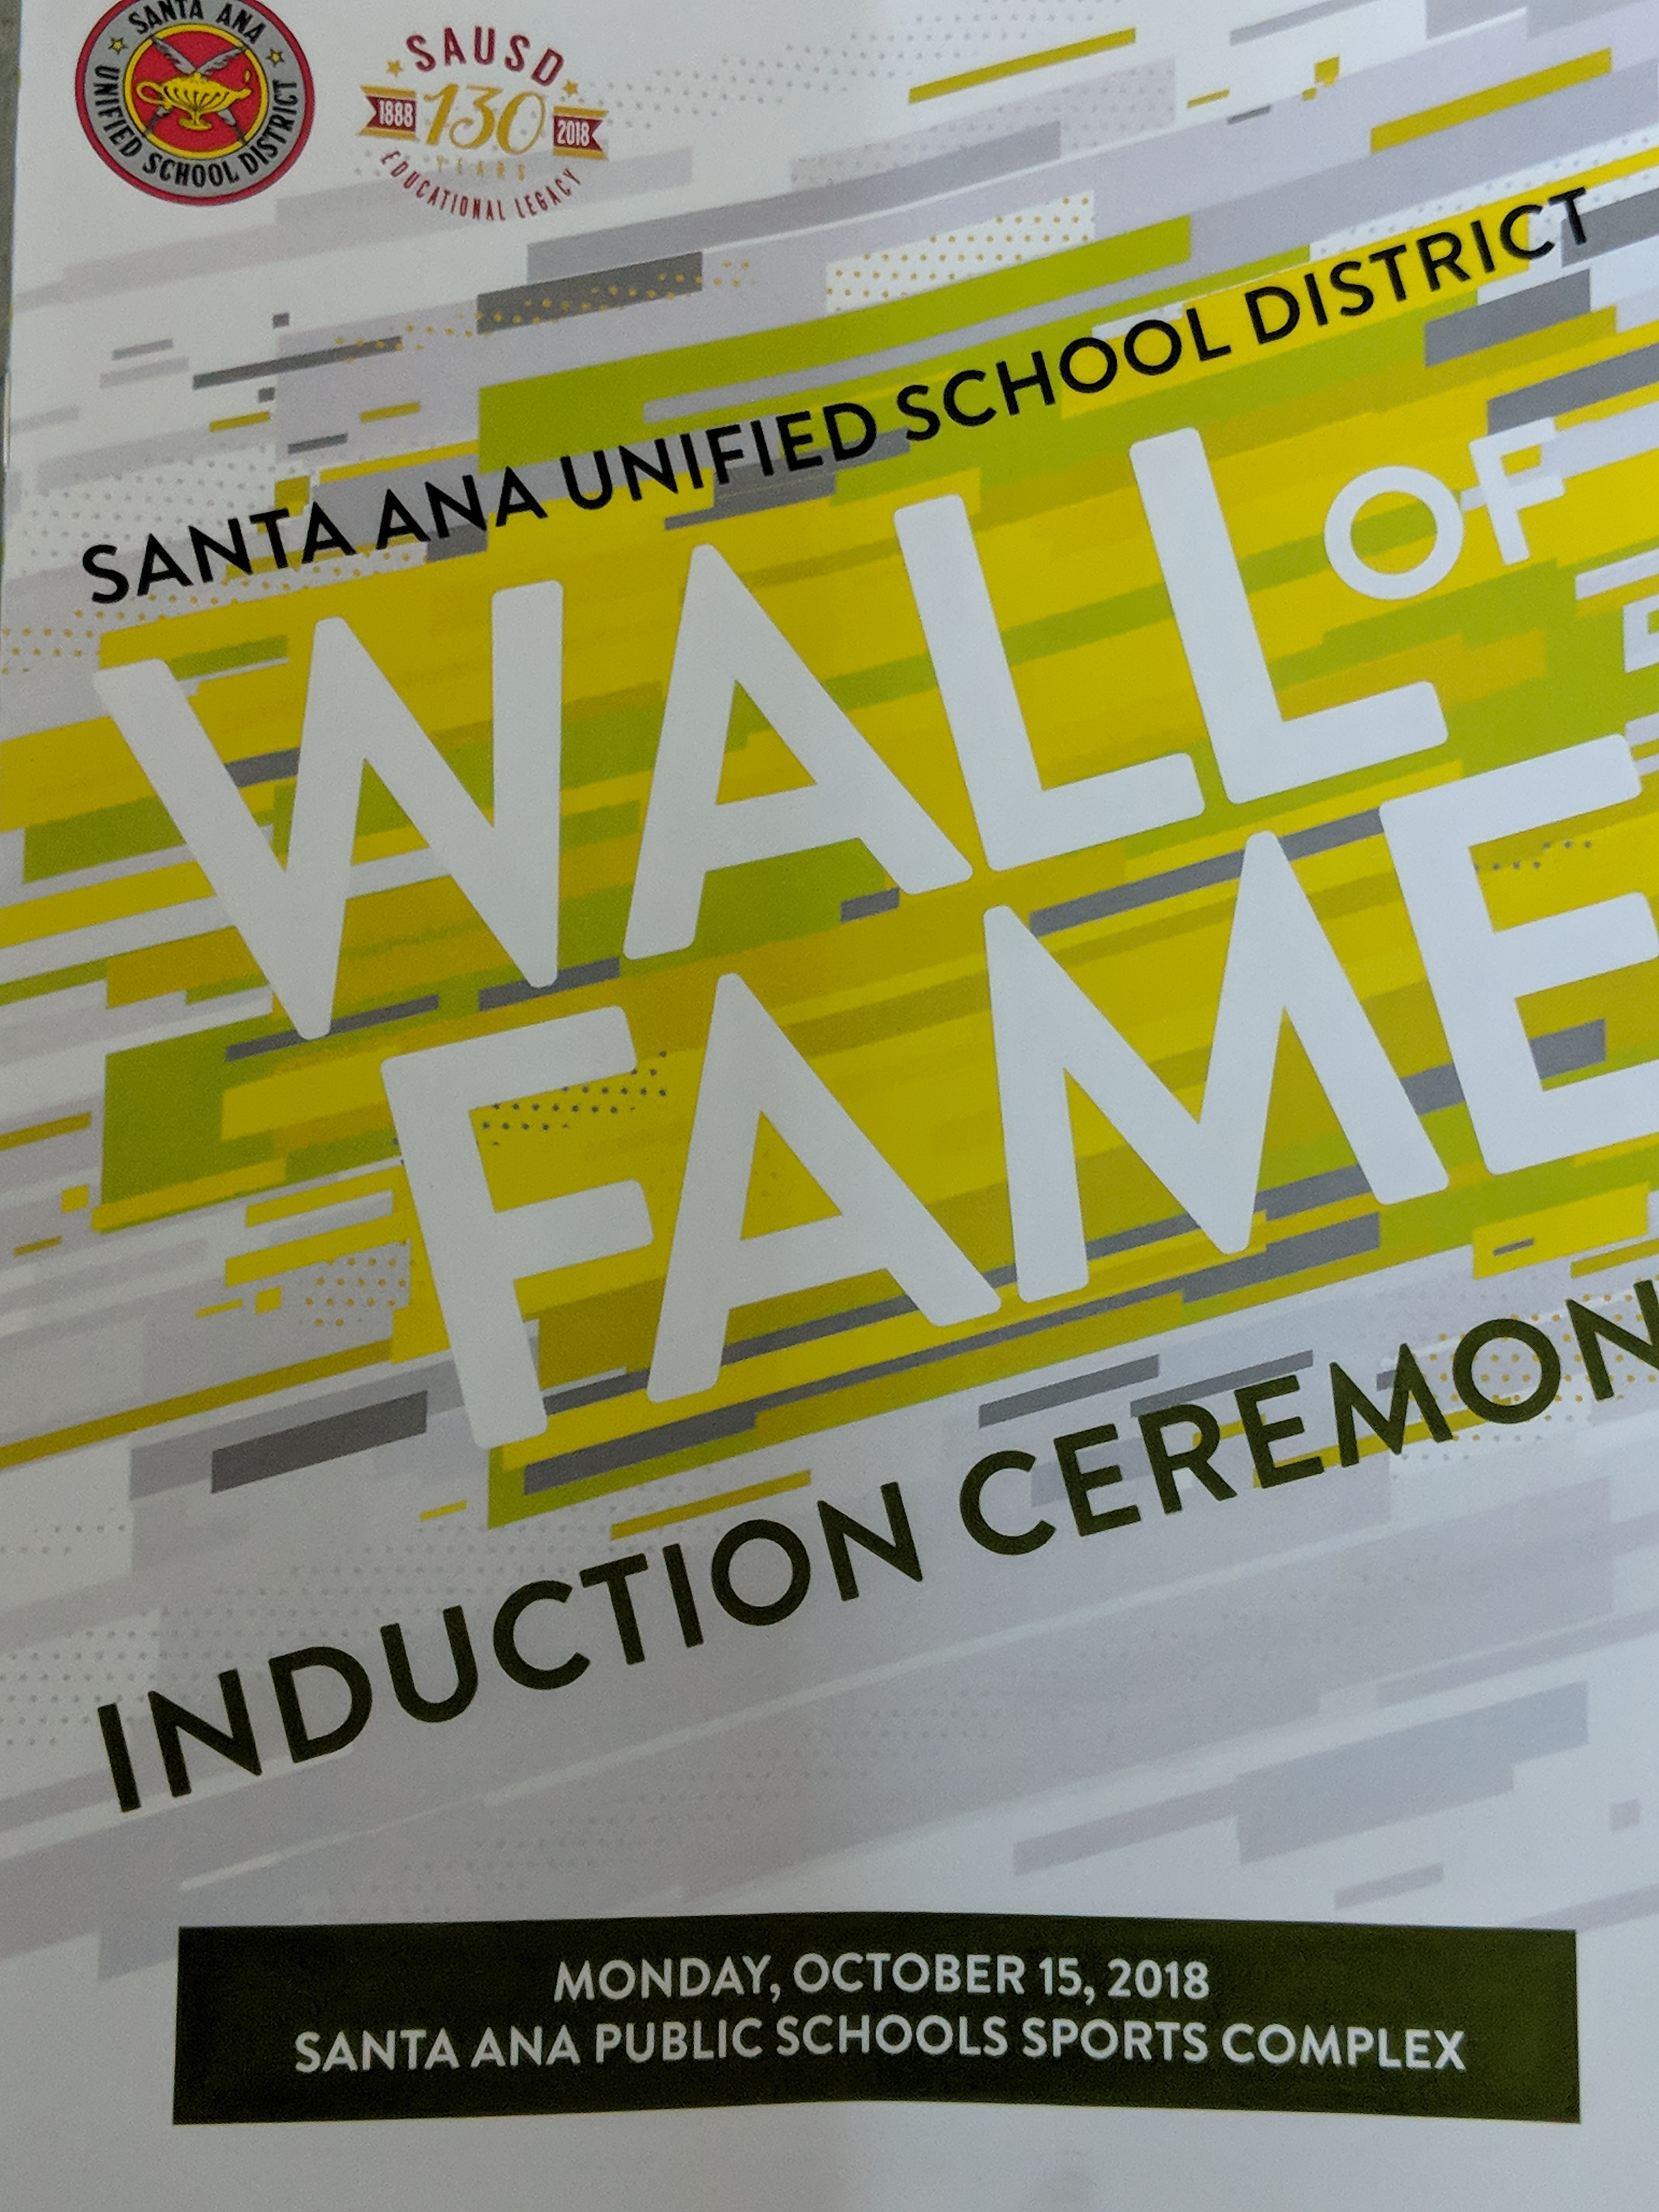 SAUSD 2018 Wall of Fame Induction Ceremony